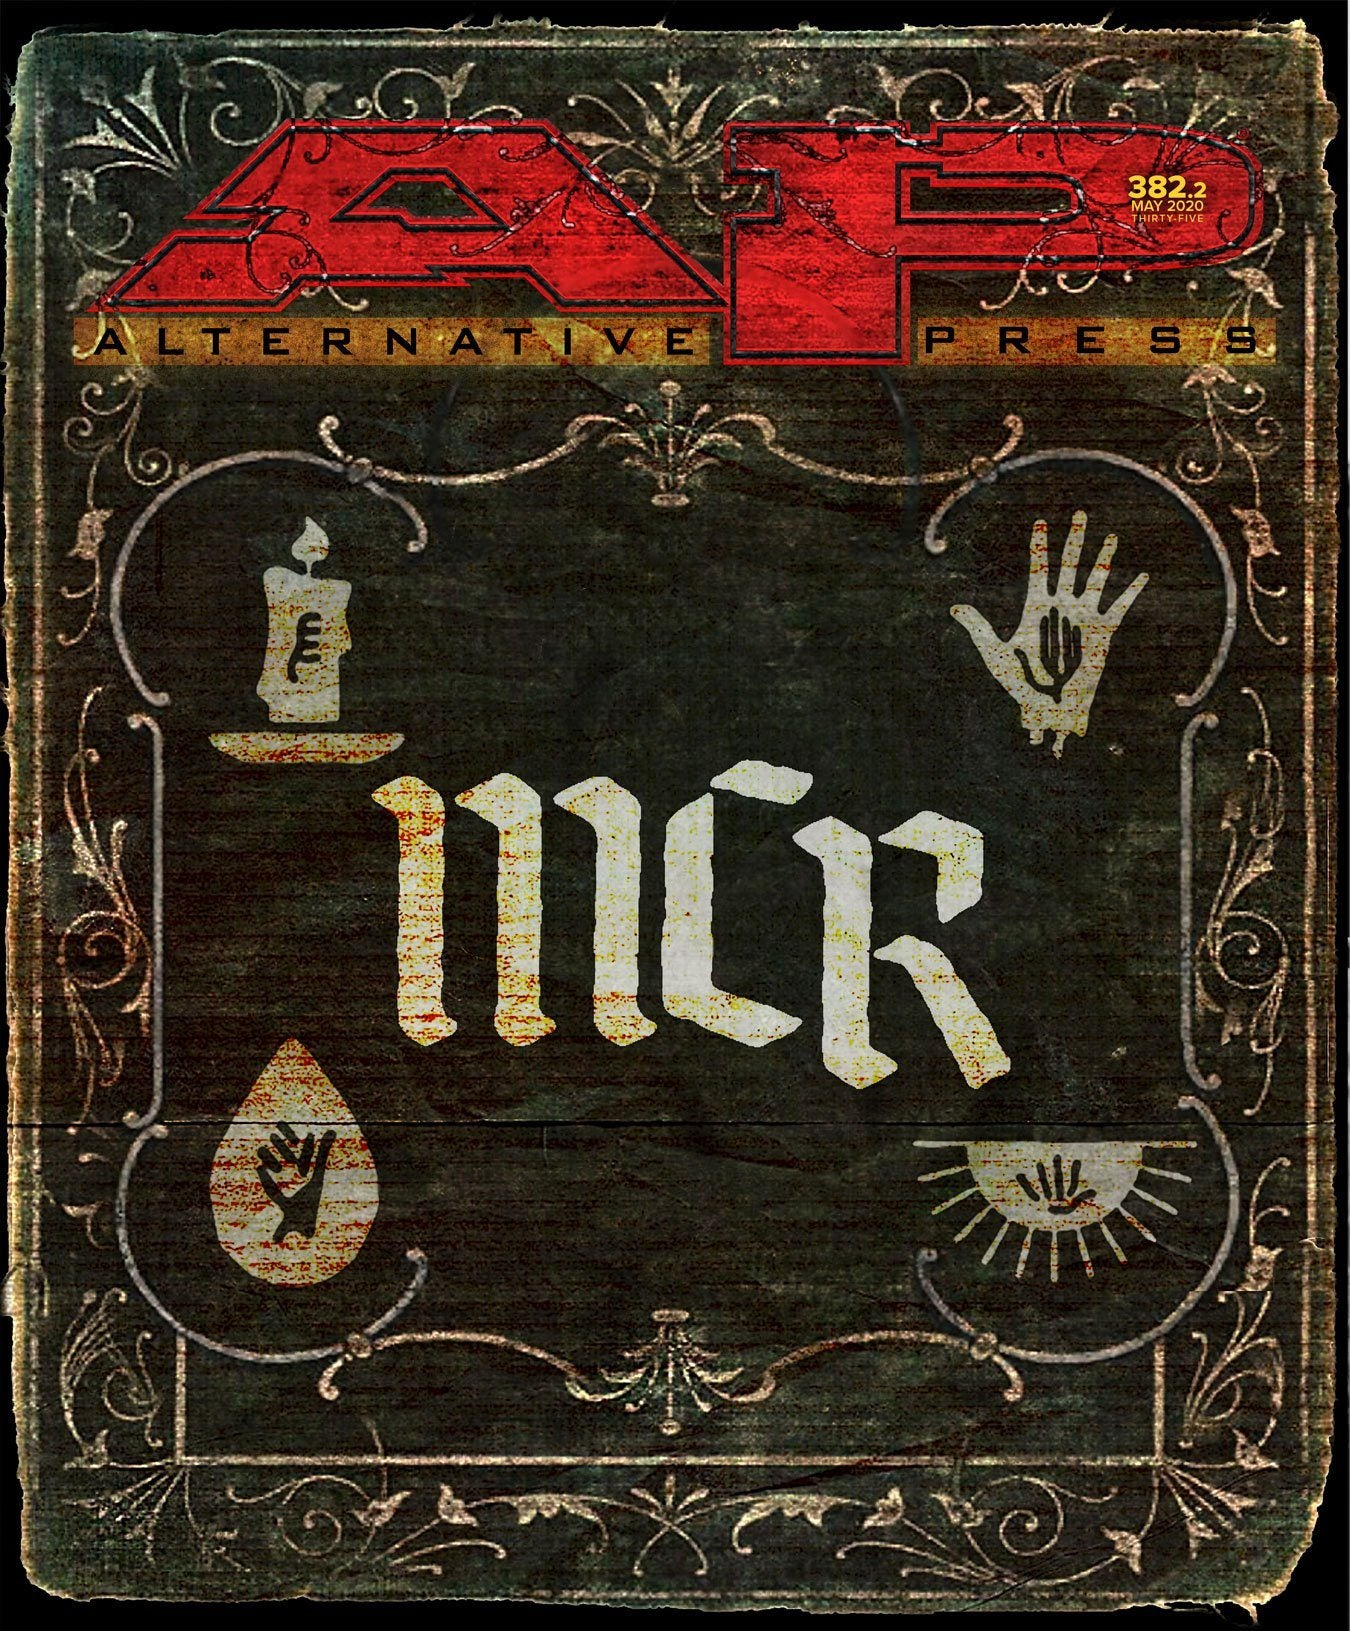 My Chemical Romance Holy Book - Alternative Press Magazine Issue 382 Version 2